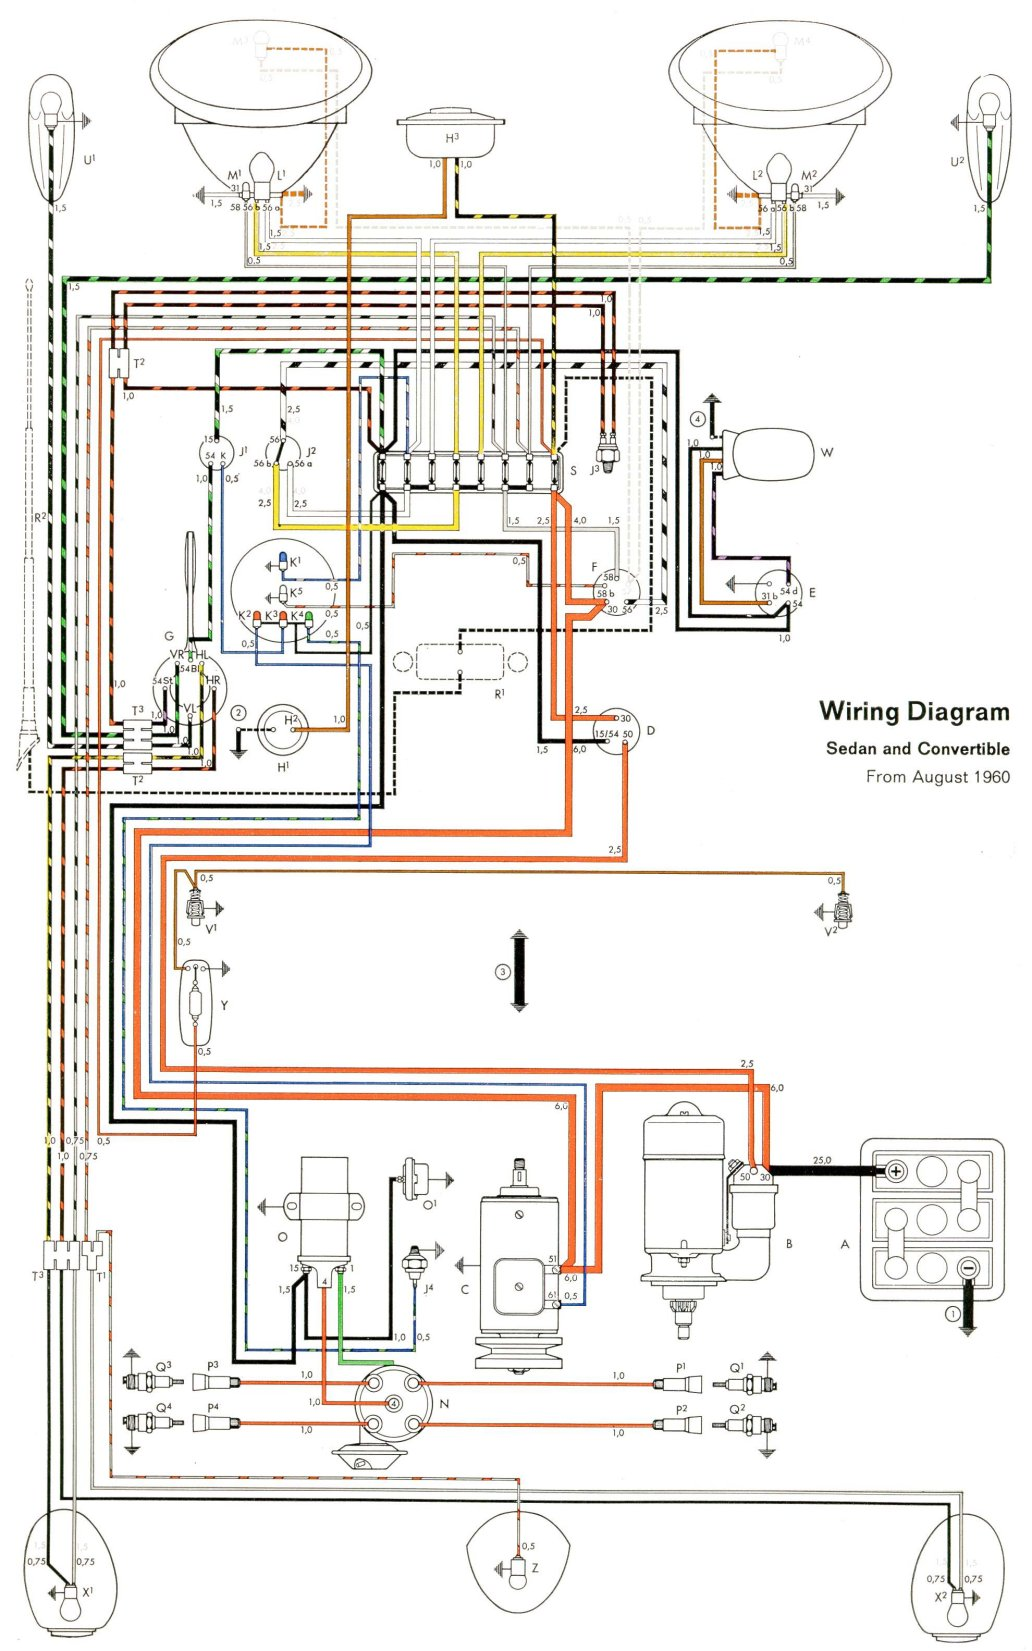 bug_61 european wiring diagram hyundai sonata wiring diagram \u2022 free vw wiring diagram symbols at soozxer.org